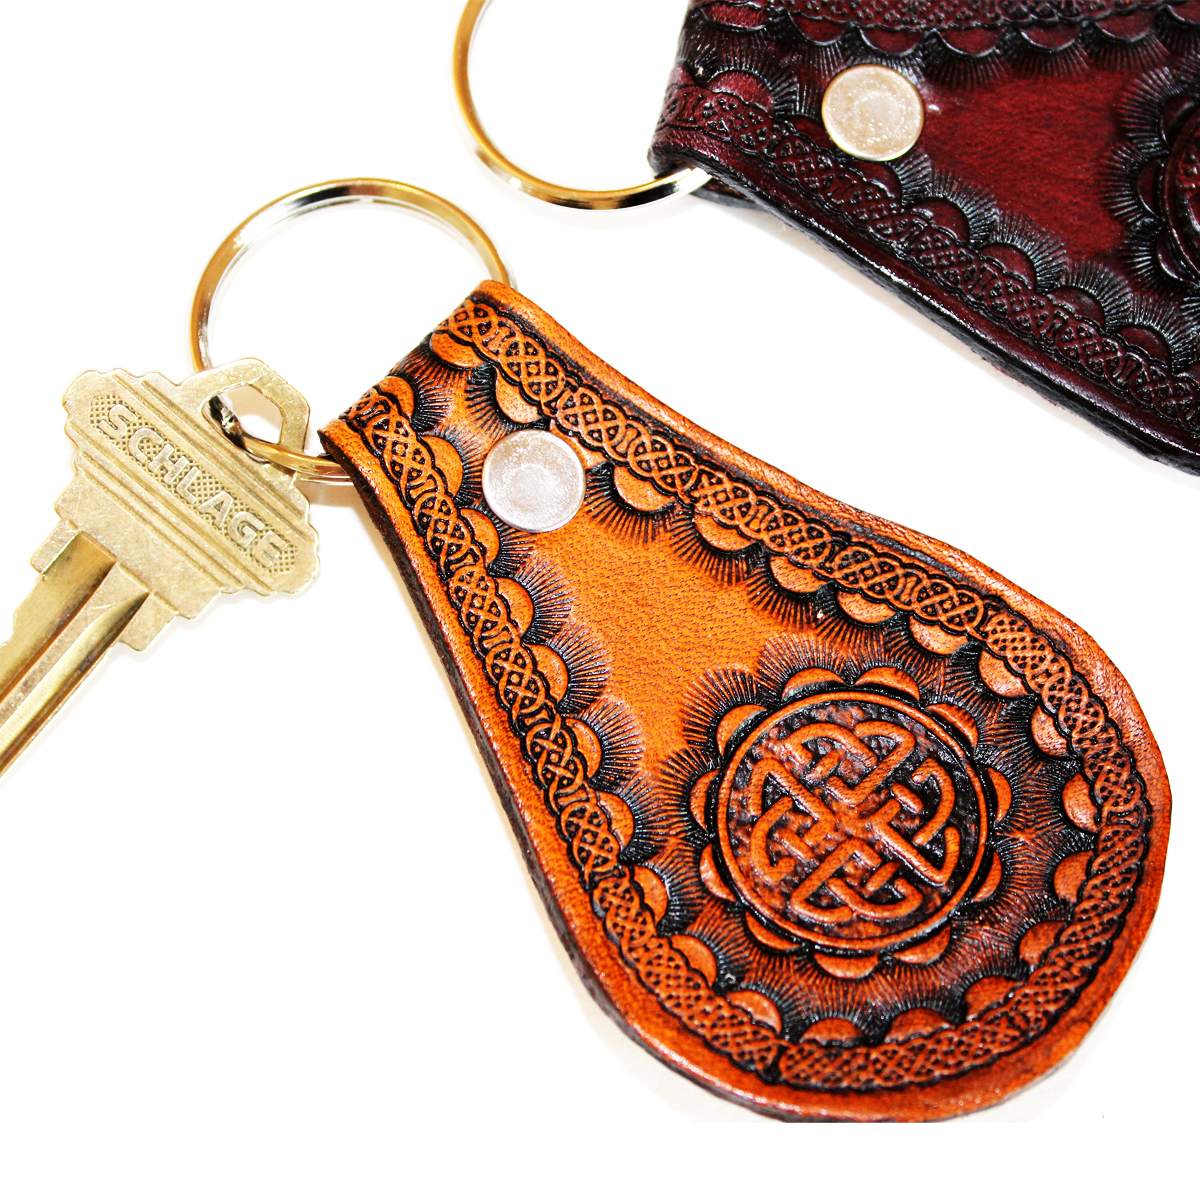 celtic-leather-key-fob-the-leather-smithy_1